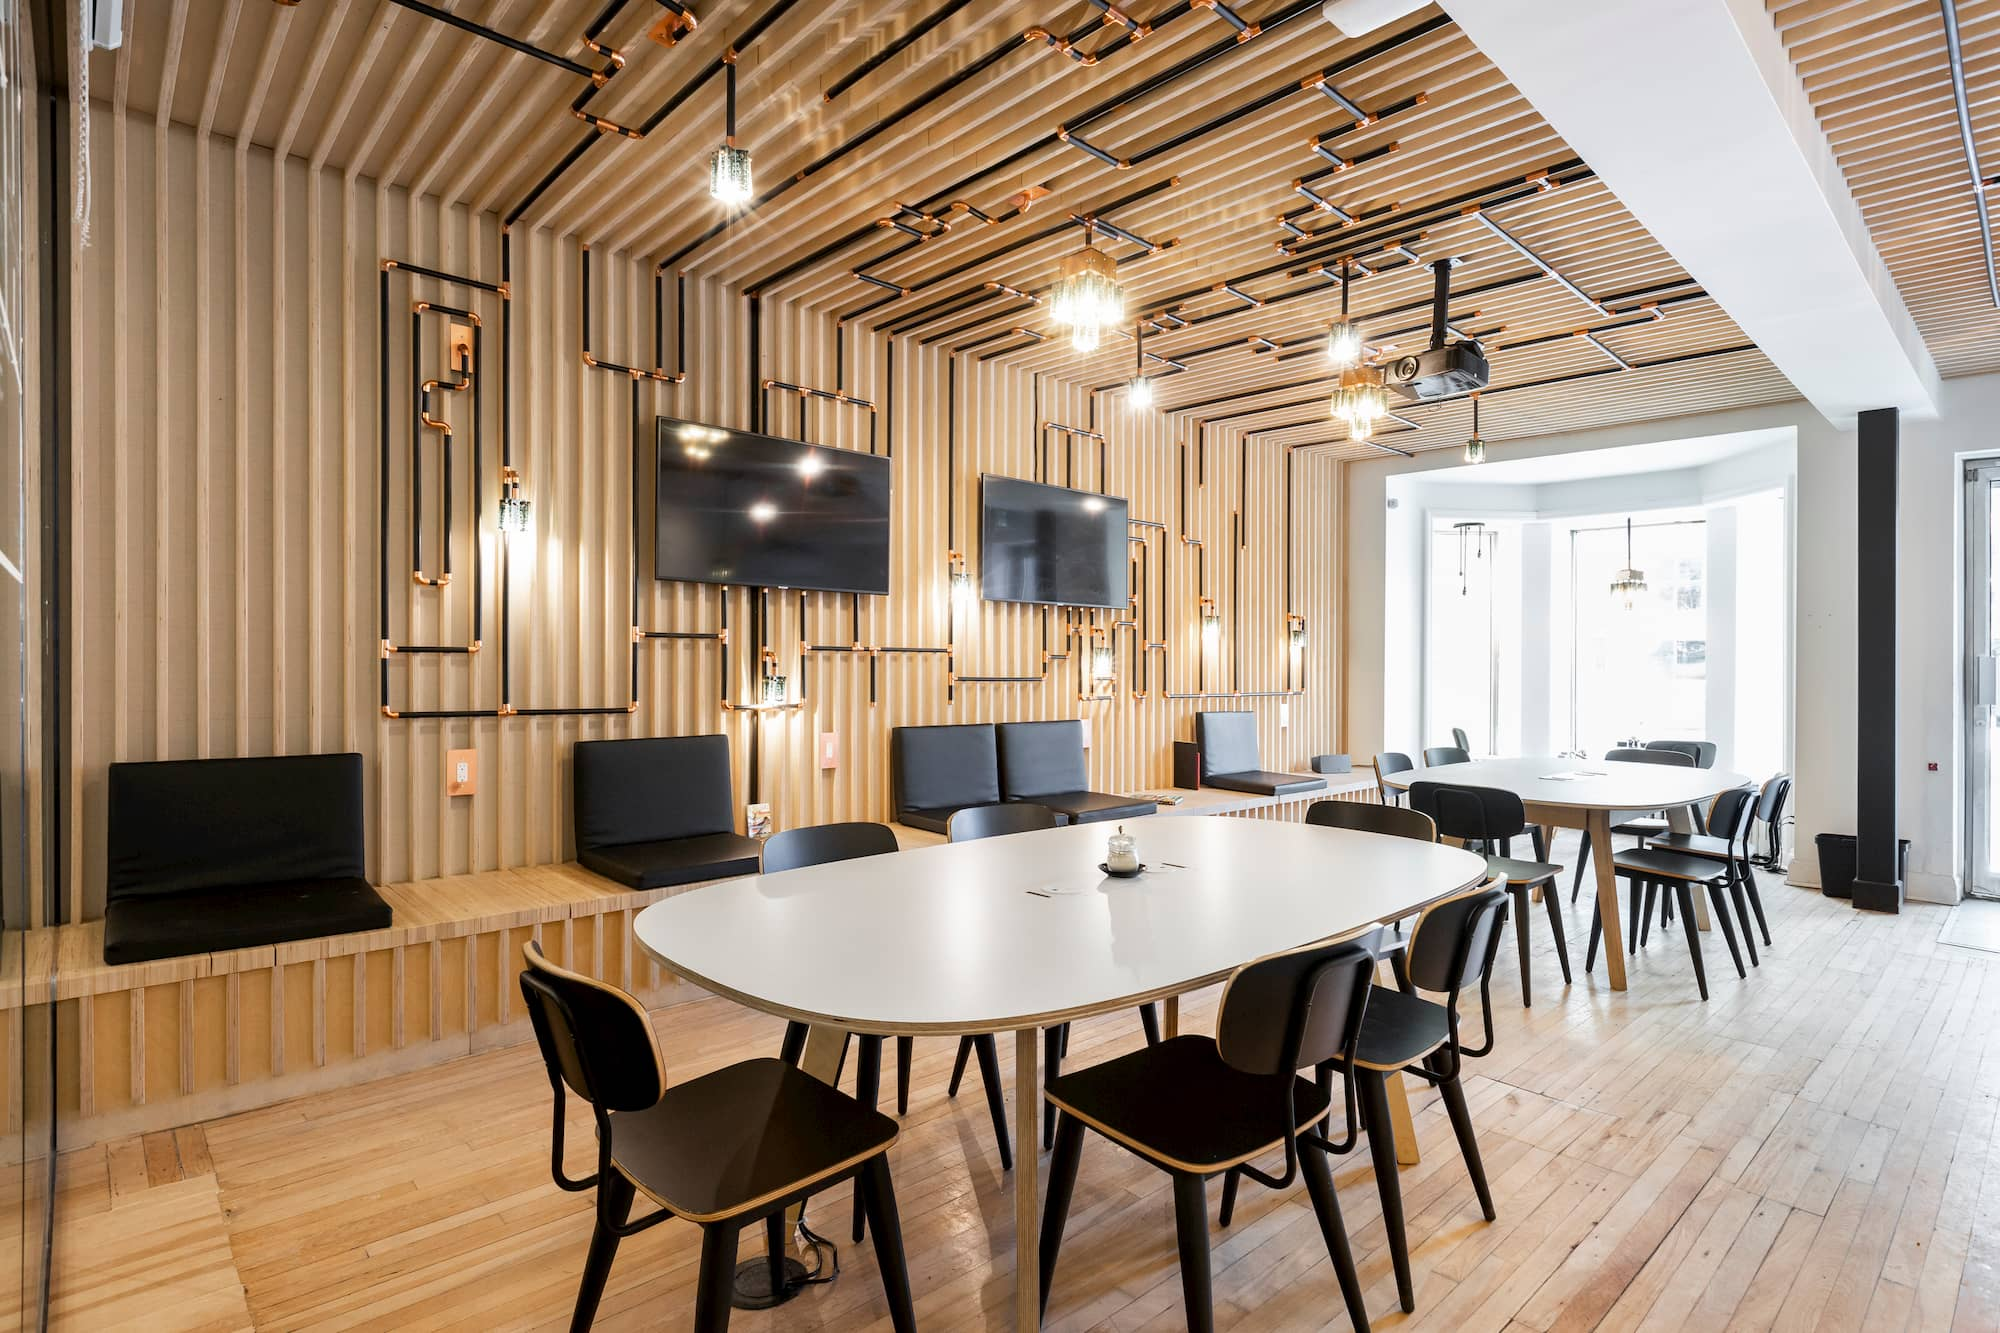 cofee shop design with beige tables and black chairs